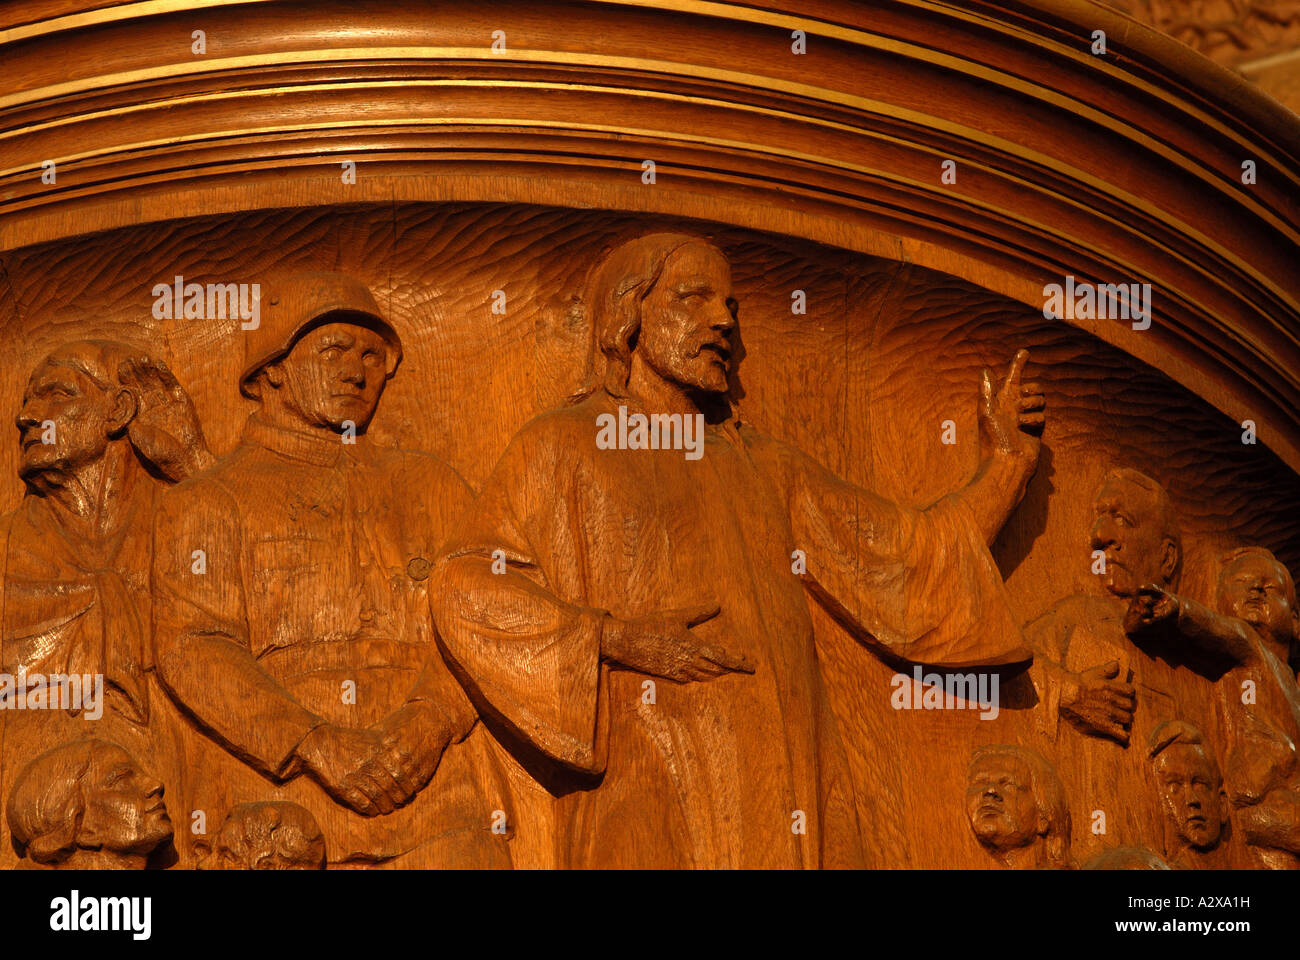 Carving of Jesus next to Nazi era soldier on pulpit of Berlin church - Stock Image